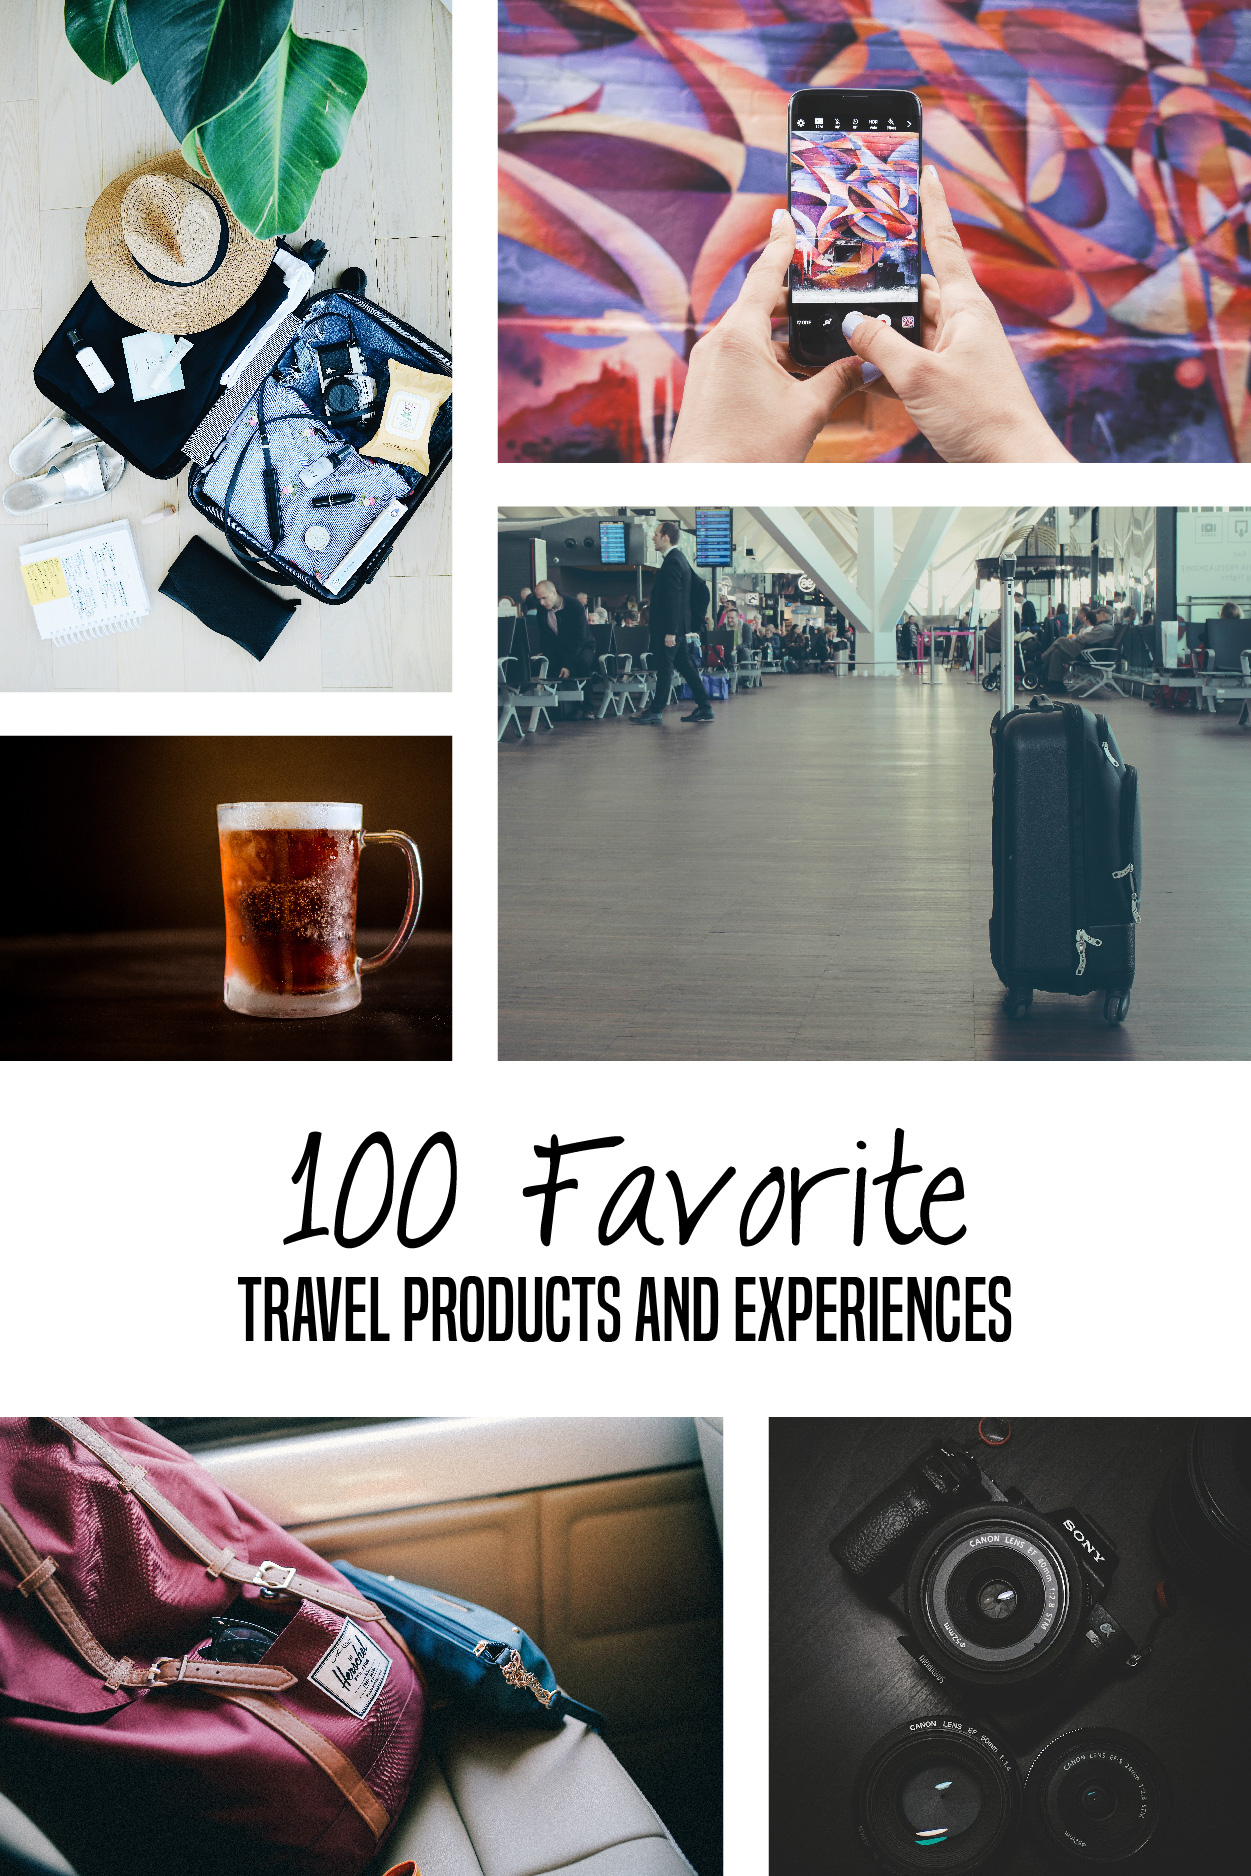 100 favorite travel products